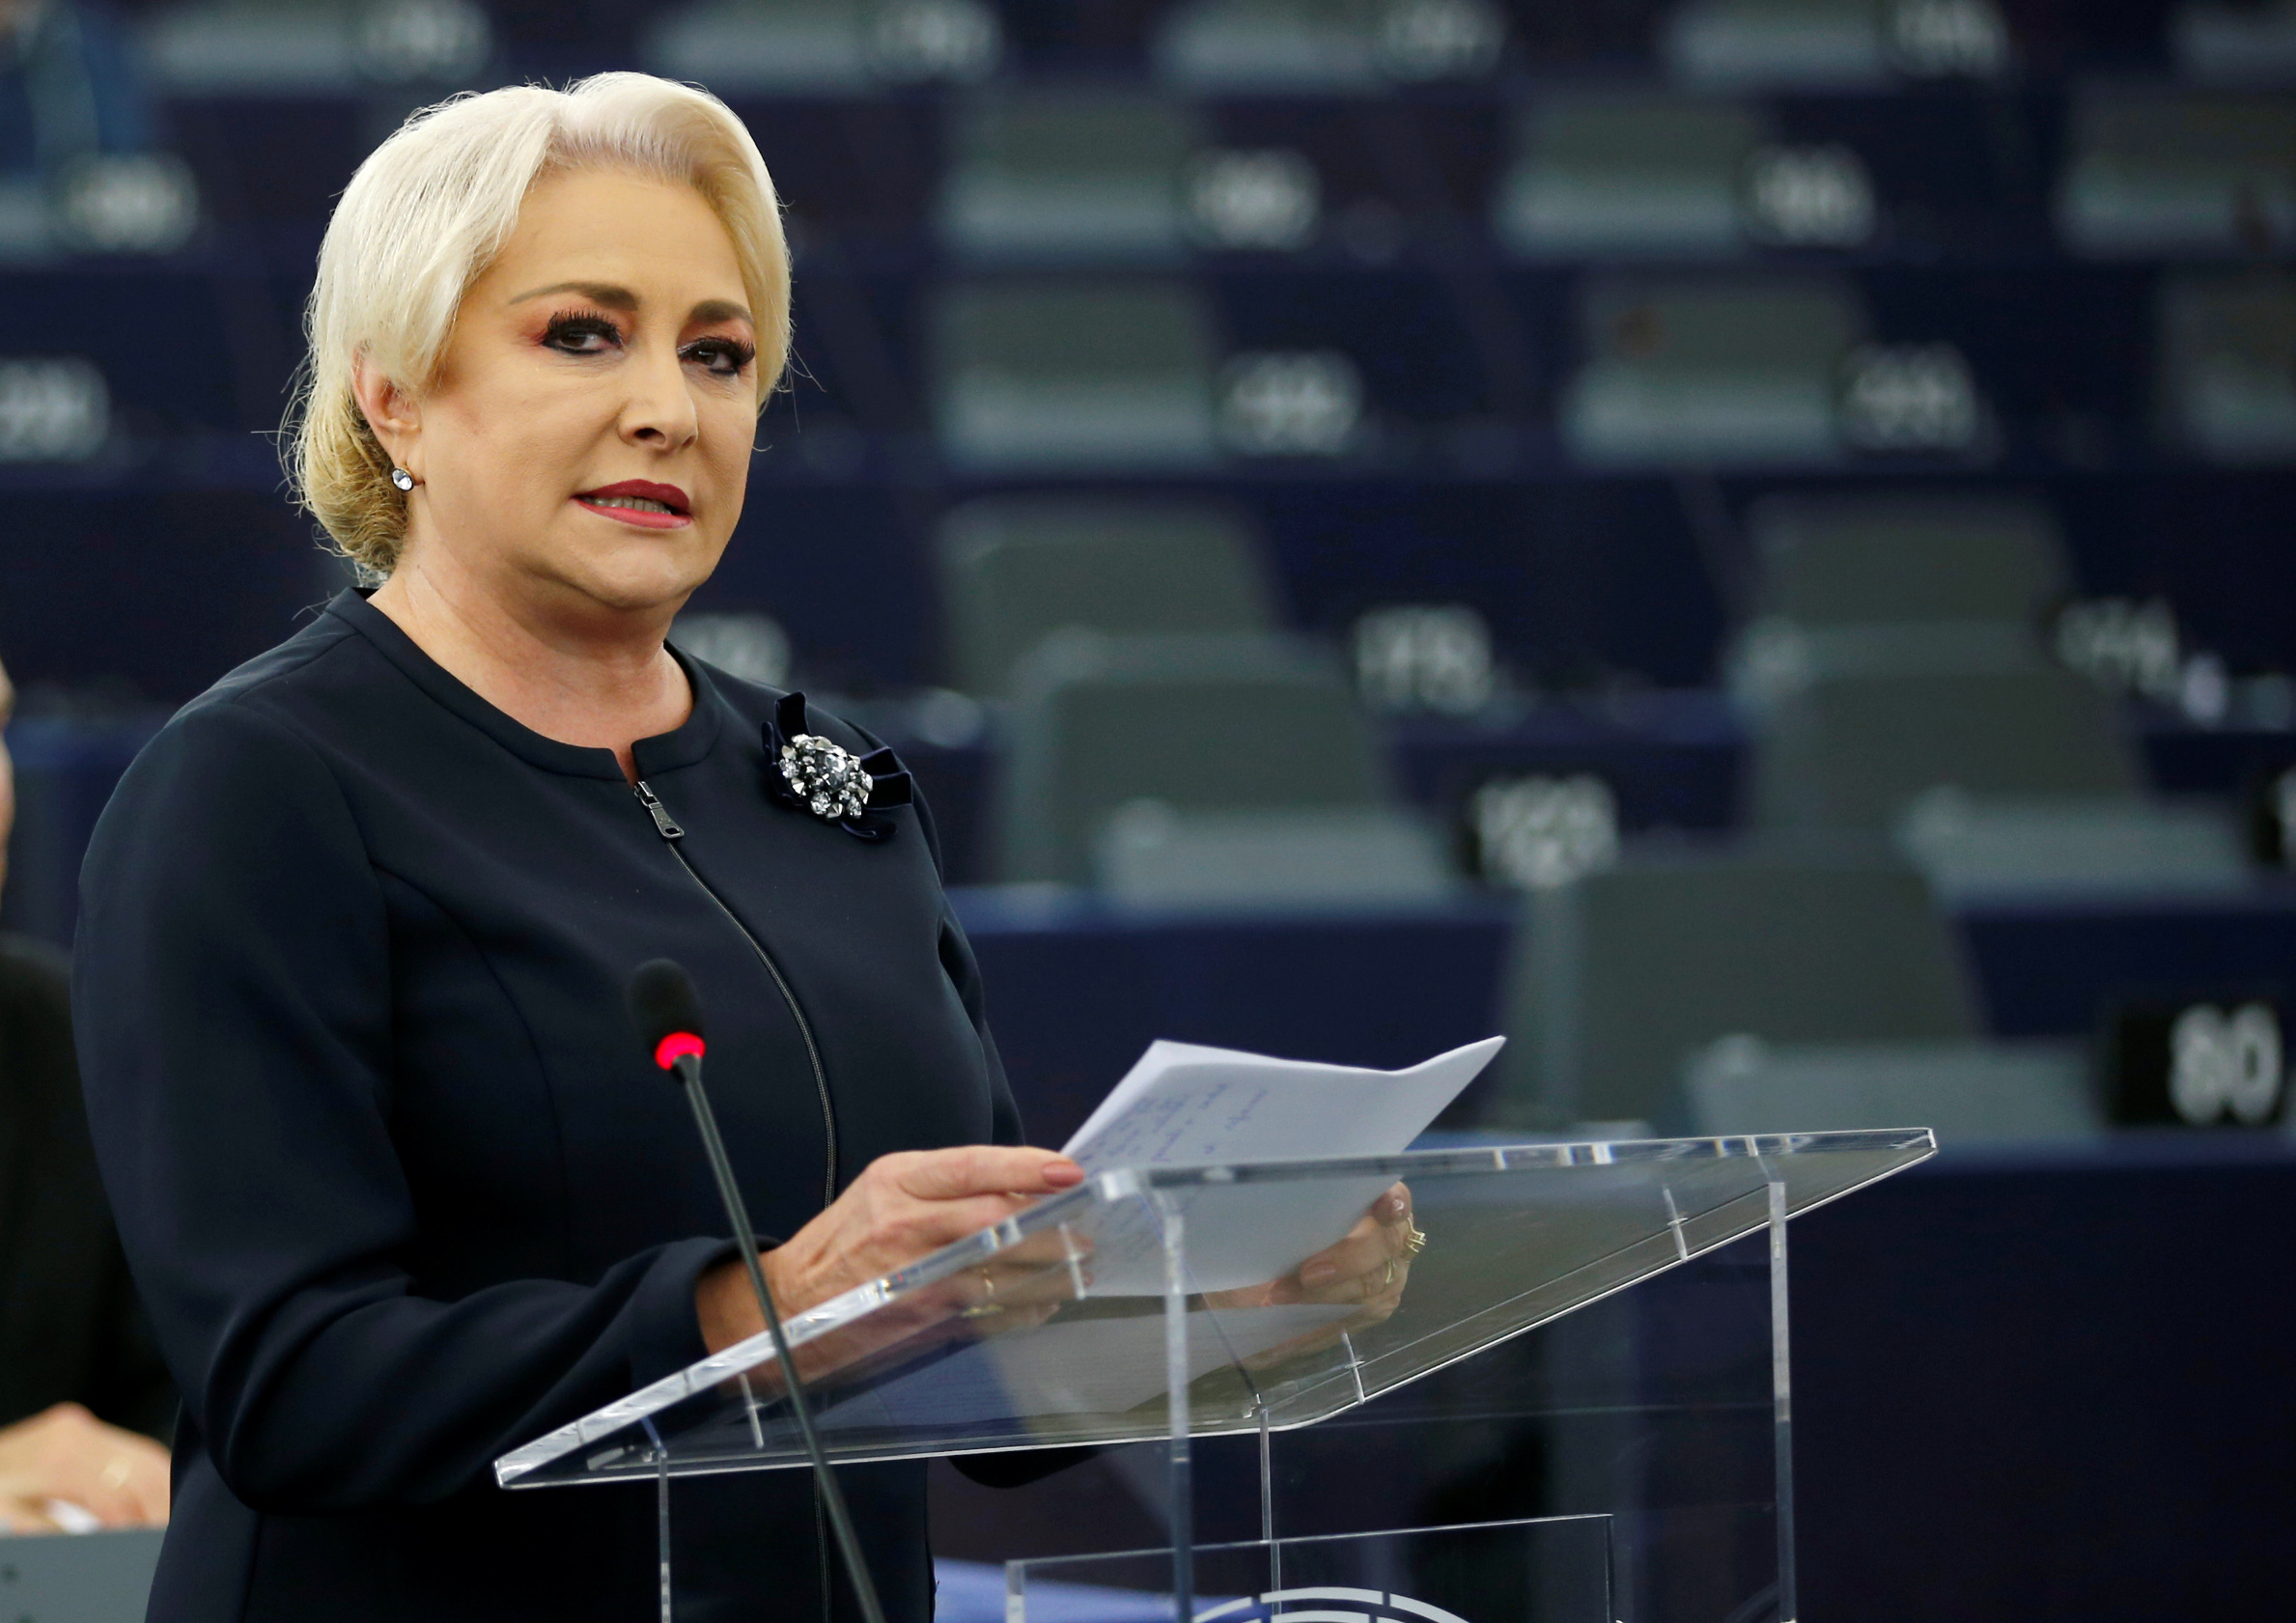 Romanian Prime Minister Viorica Dancila delivers a speech during a debate on the rule of law in Romania at the European Parliament in Strasbourg, France, October 3, 2018.  REUTERS/Vincent Kessler - RC15AA194EC0